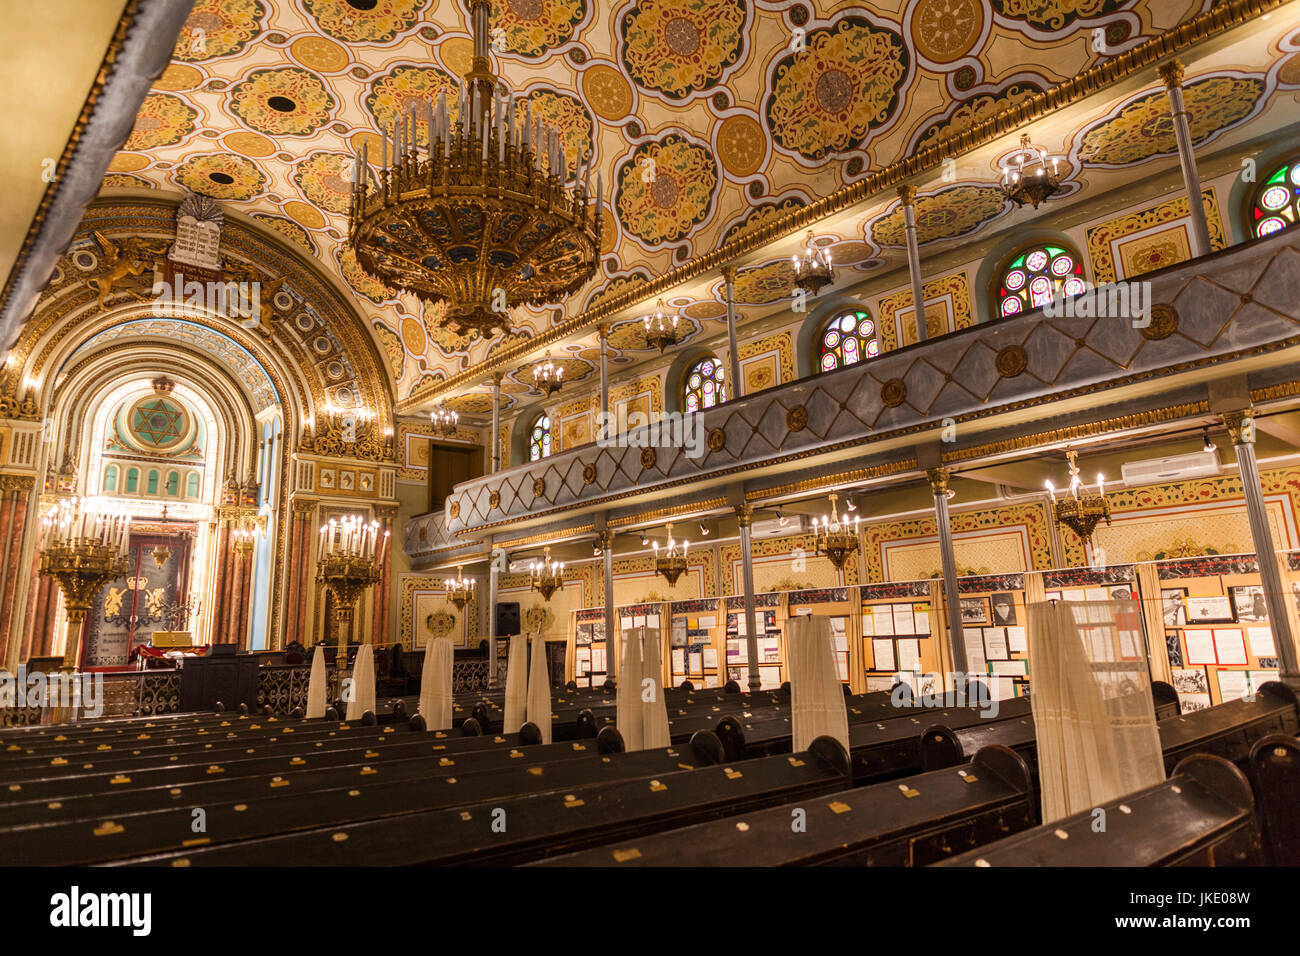 Romania, Bucharest, Grand Synagogue, interior - Stock Image